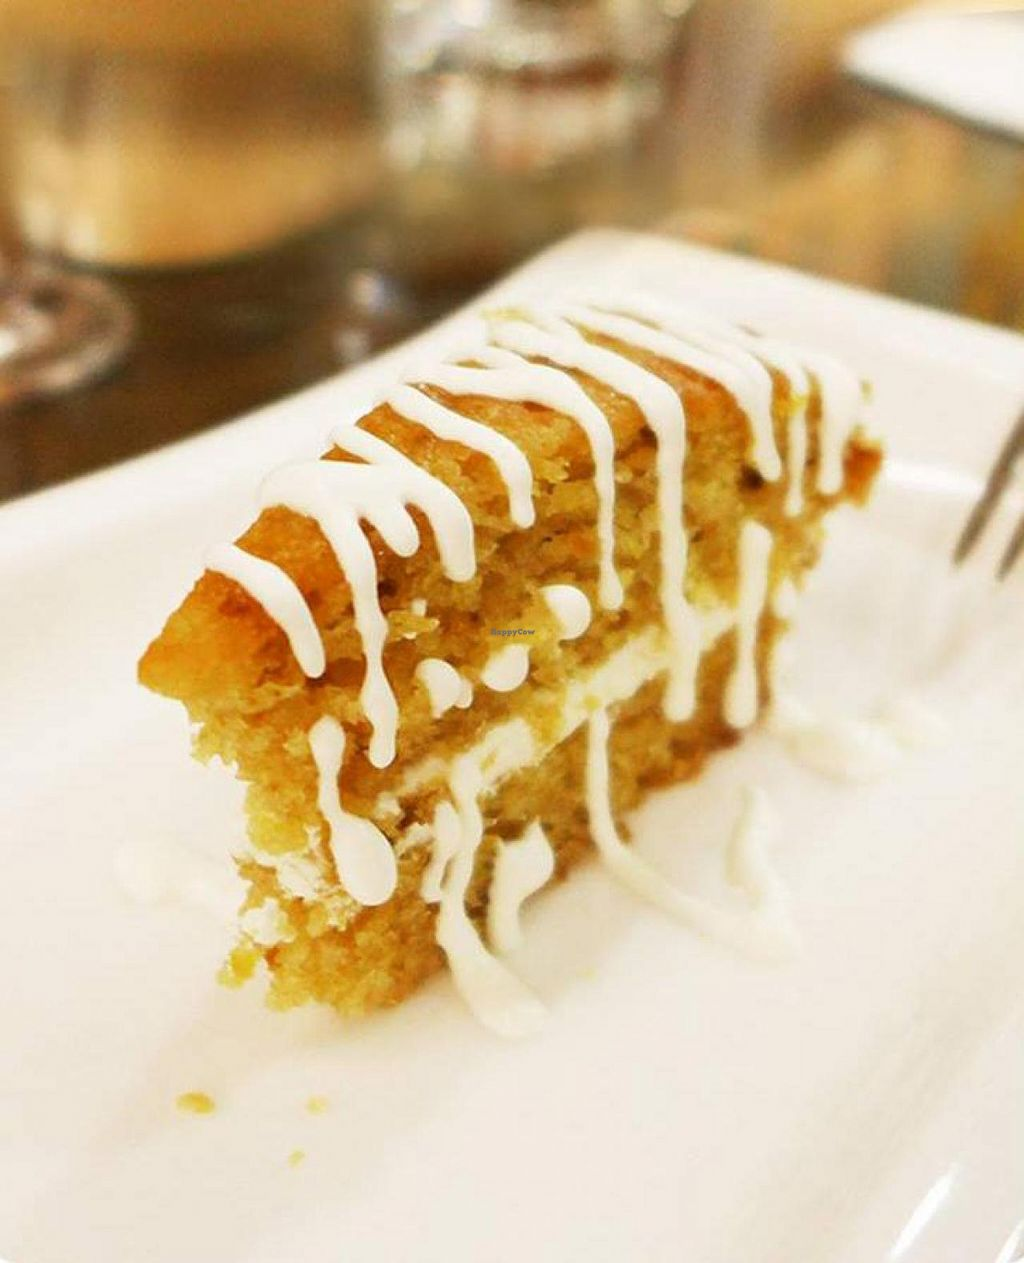 """Photo of CLOSED: Sophie's Garden  by <a href=""""/members/profile/bluesomeone"""">bluesomeone</a> <br/>vegan orange cake <br/> September 16, 2014  - <a href='/contact/abuse/image/36037/80165'>Report</a>"""